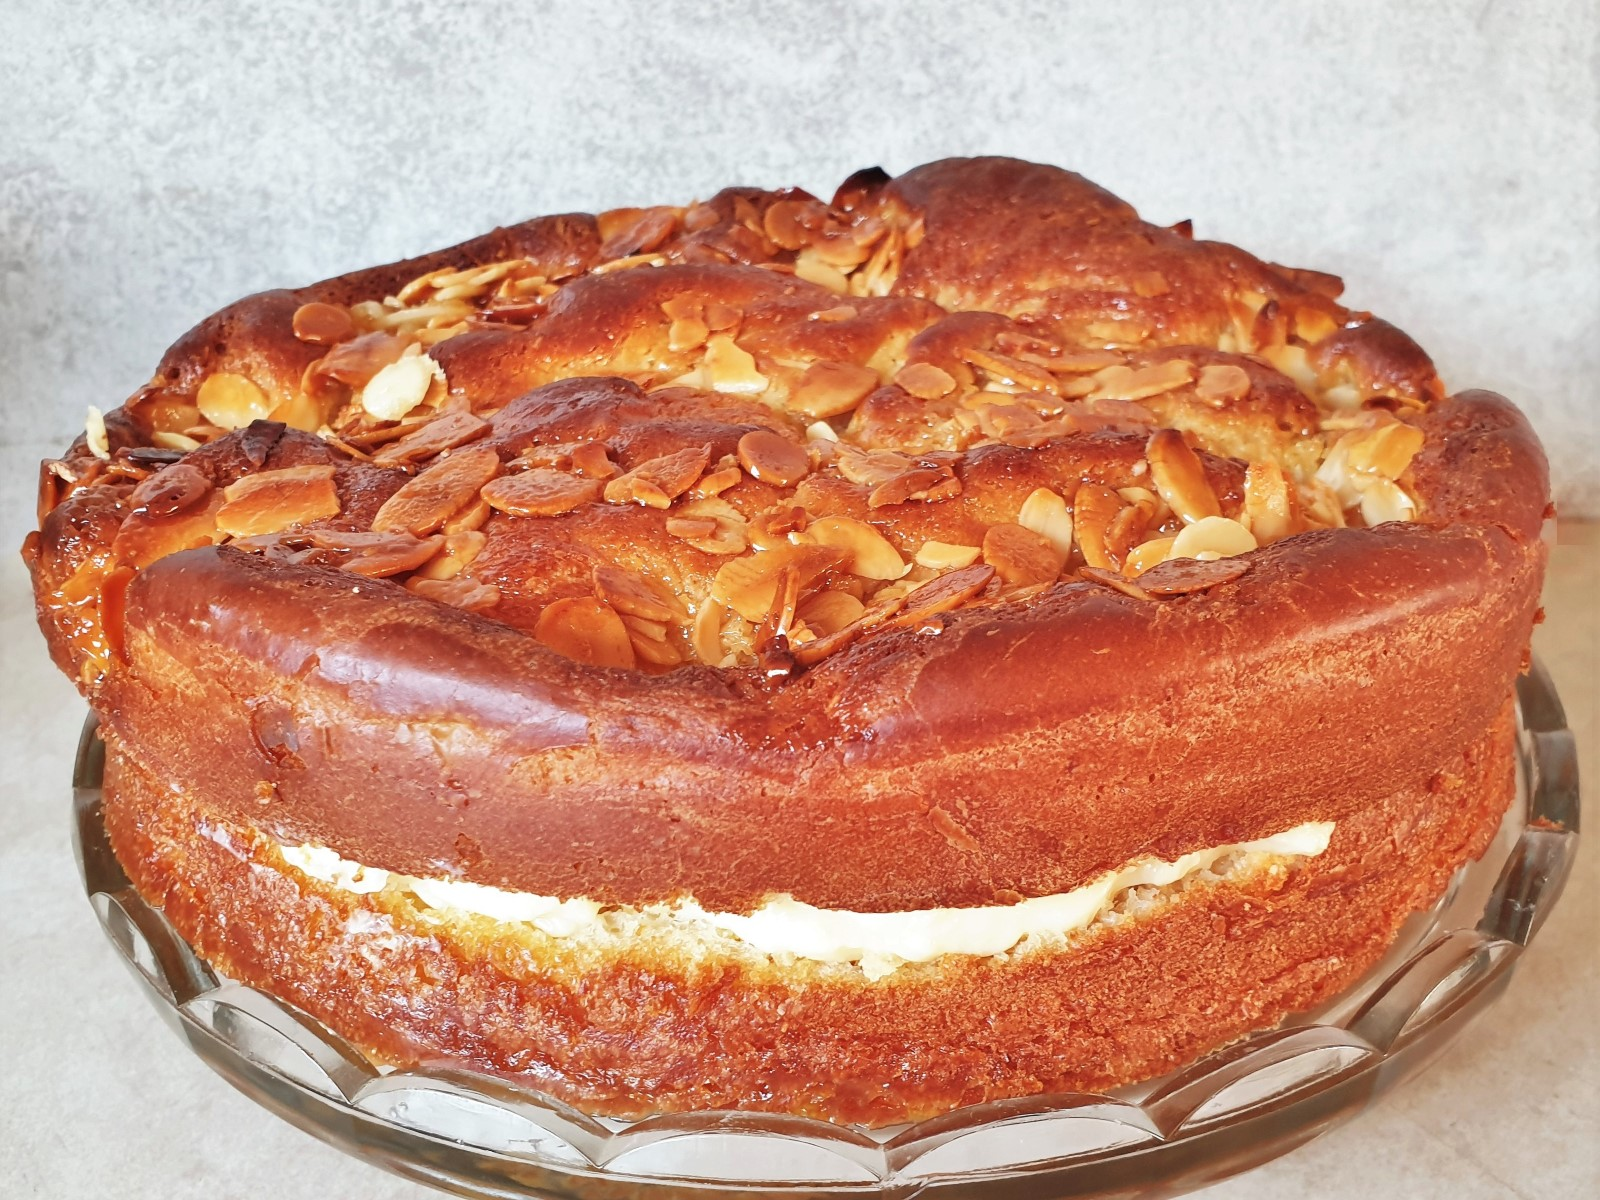 An side on view of a bee sting cake showing the rise of the cake, the filling and the crunch almond topping.